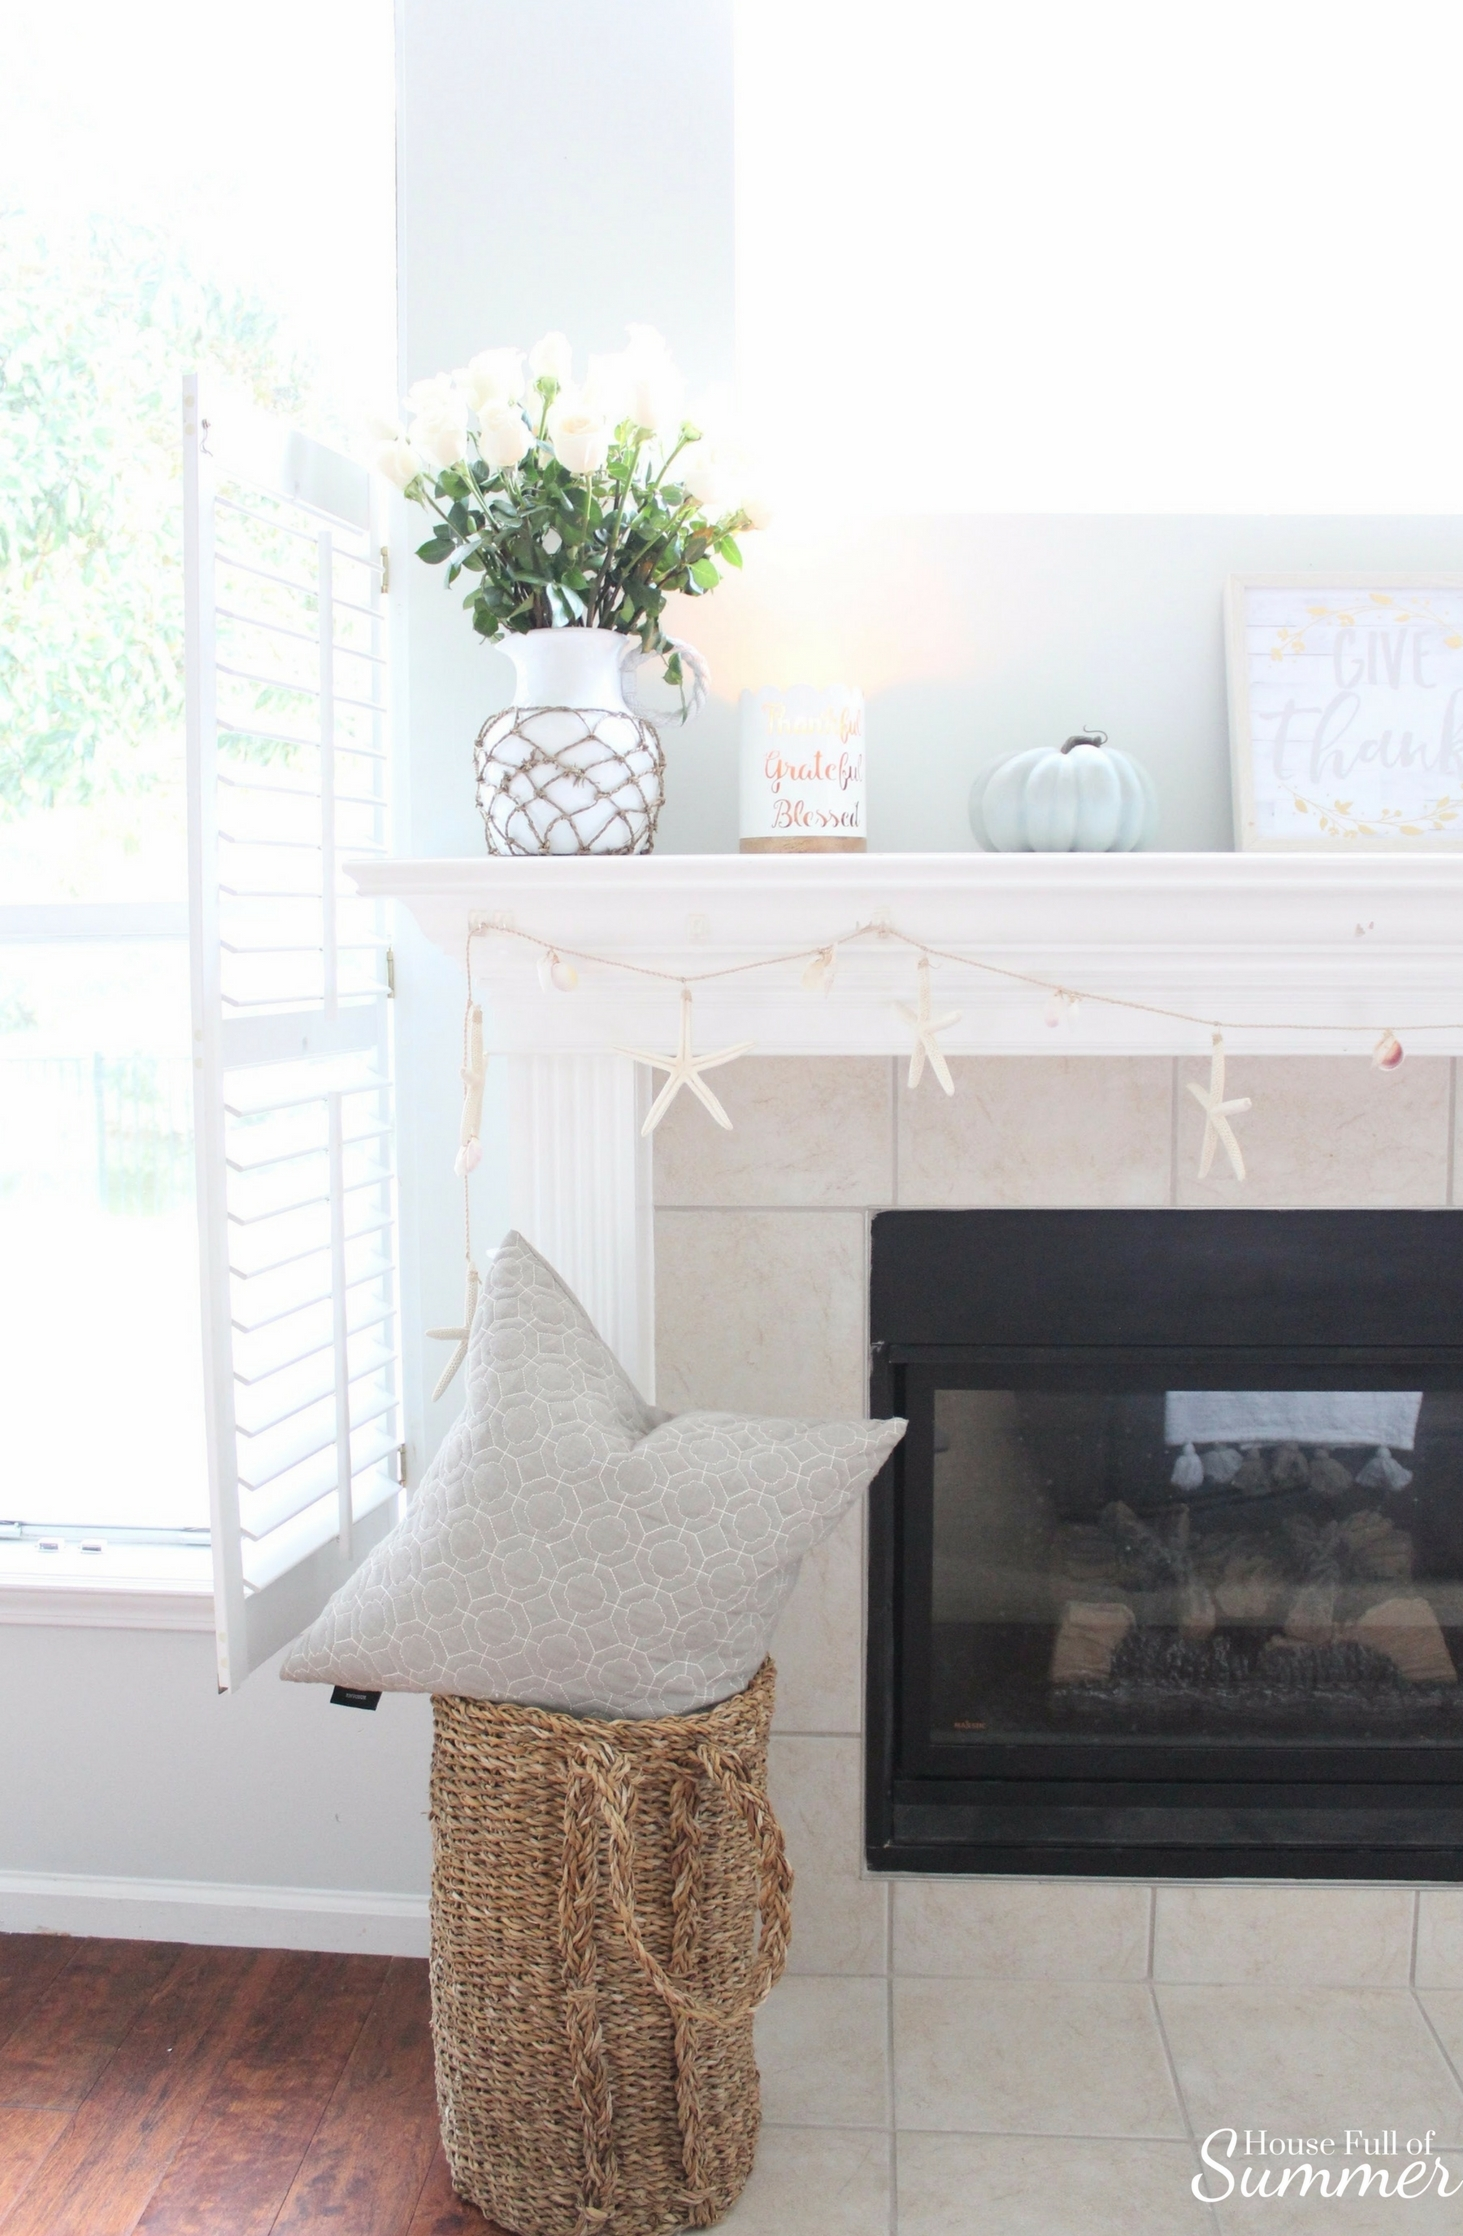 House Full of Summer: Fall Home Tour Blog Hop - Cozy, Coastal, Chic Family Room or Living Room fall decorating ideas, fireplace, neutral interior, white pumpkins, fall mantel ideas, starfish garland, woven basket, decorating ideas